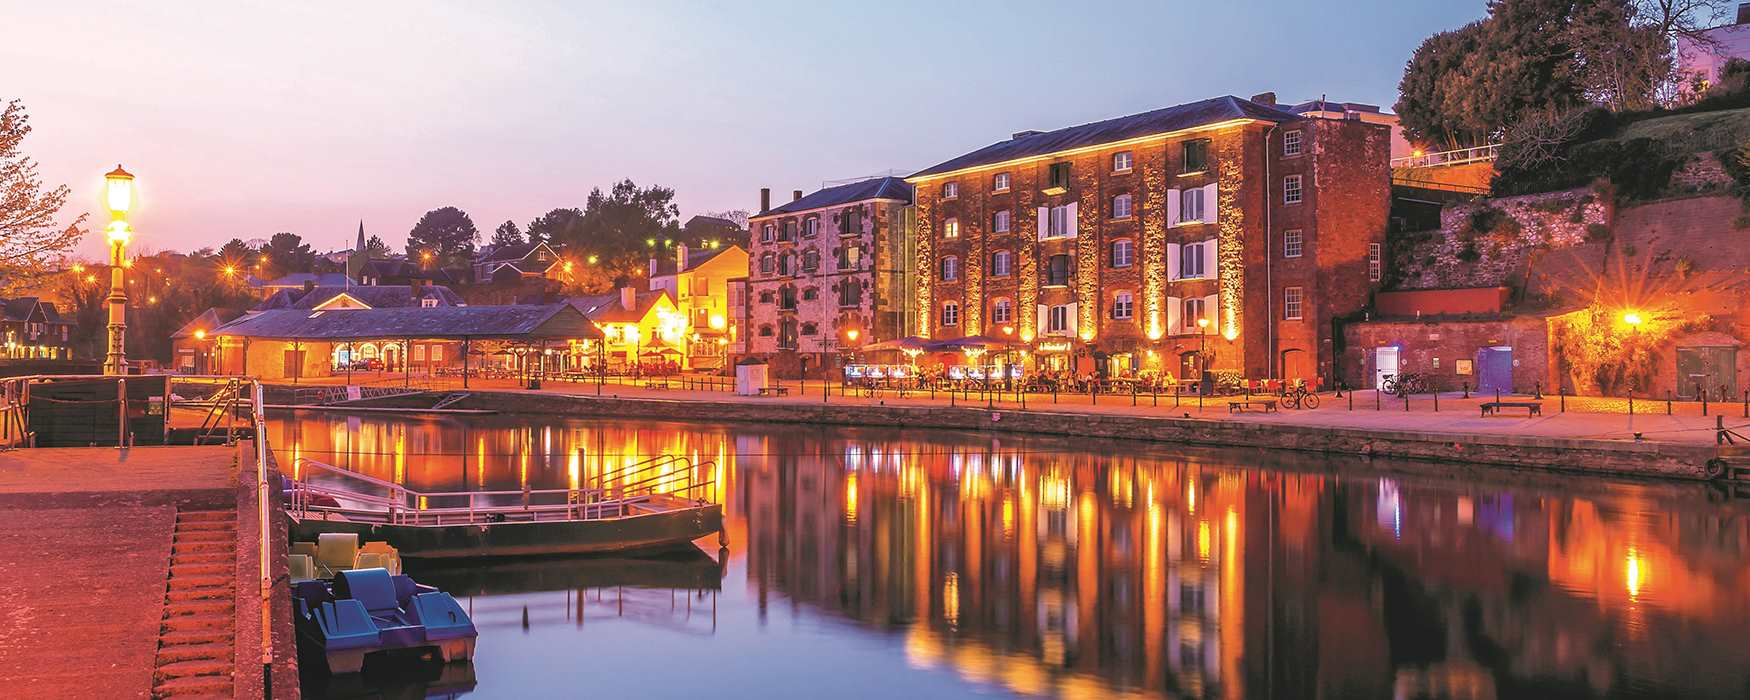 Waterside pubs and restaurants in Exeter